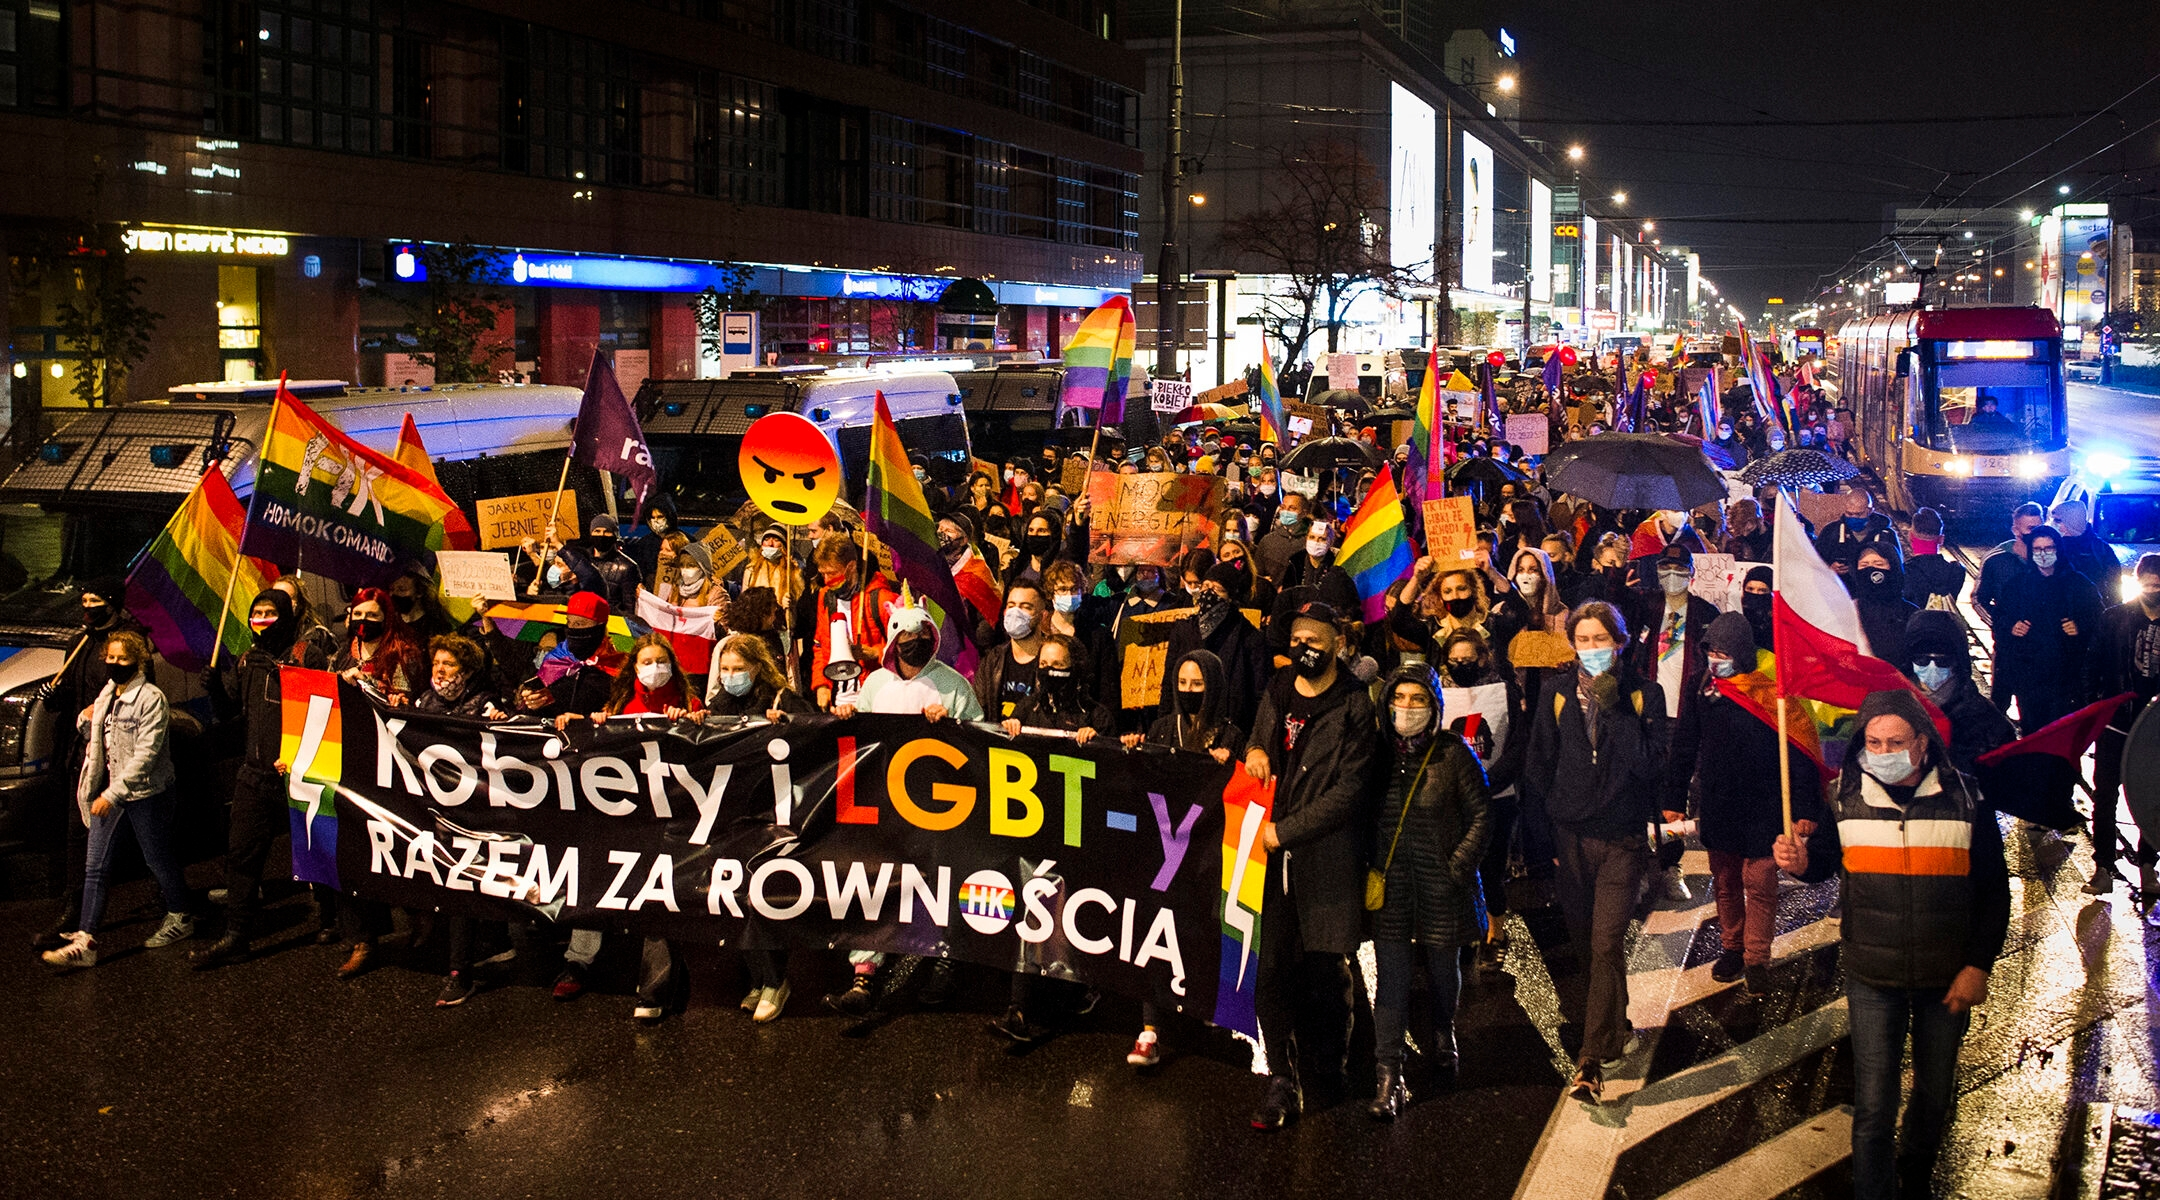 Demonstrators protesting a Polish high court's ban on abotions in Warsaw, Poland on October 29, 2020. (Piotr Lapinski/NurPhoto via Getty Images)